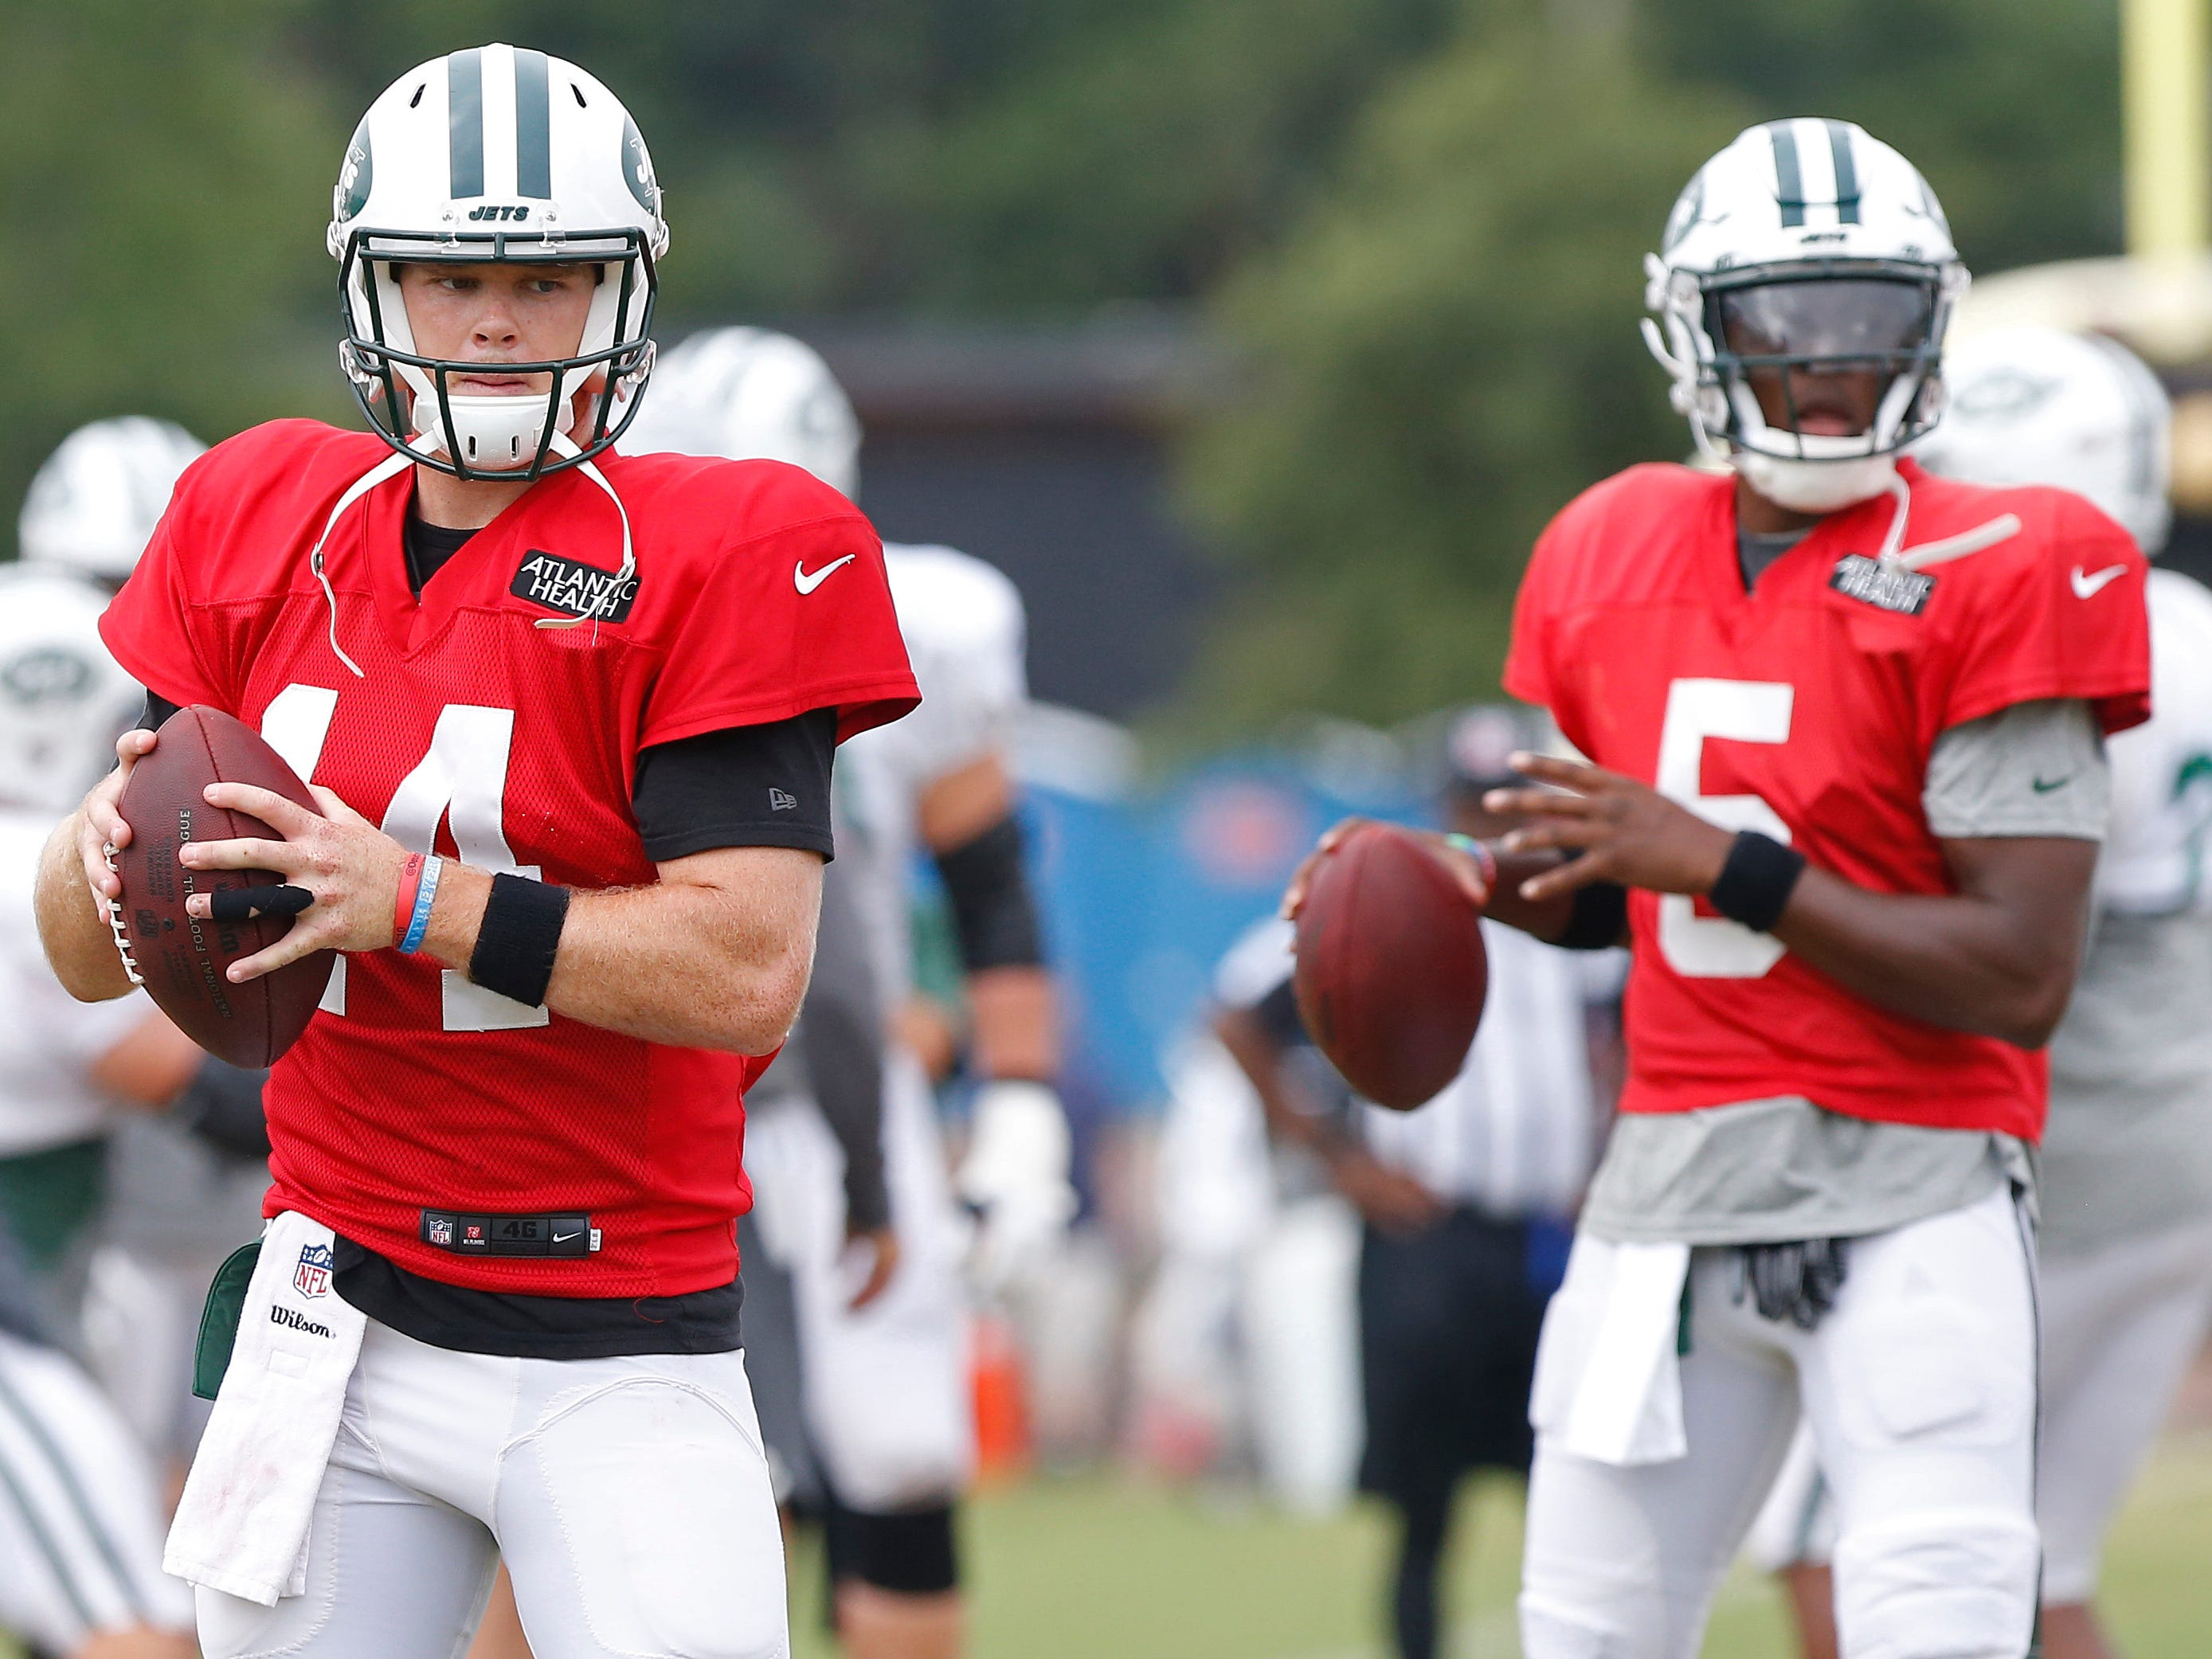 New York Jets quarterback Sam Darnold (14) and New York Jets quarterback Teddy Bridgewater (5) participate in drills during a joint practice with the Washington Redskins at Bon Secours Washington Redskins Training Center.